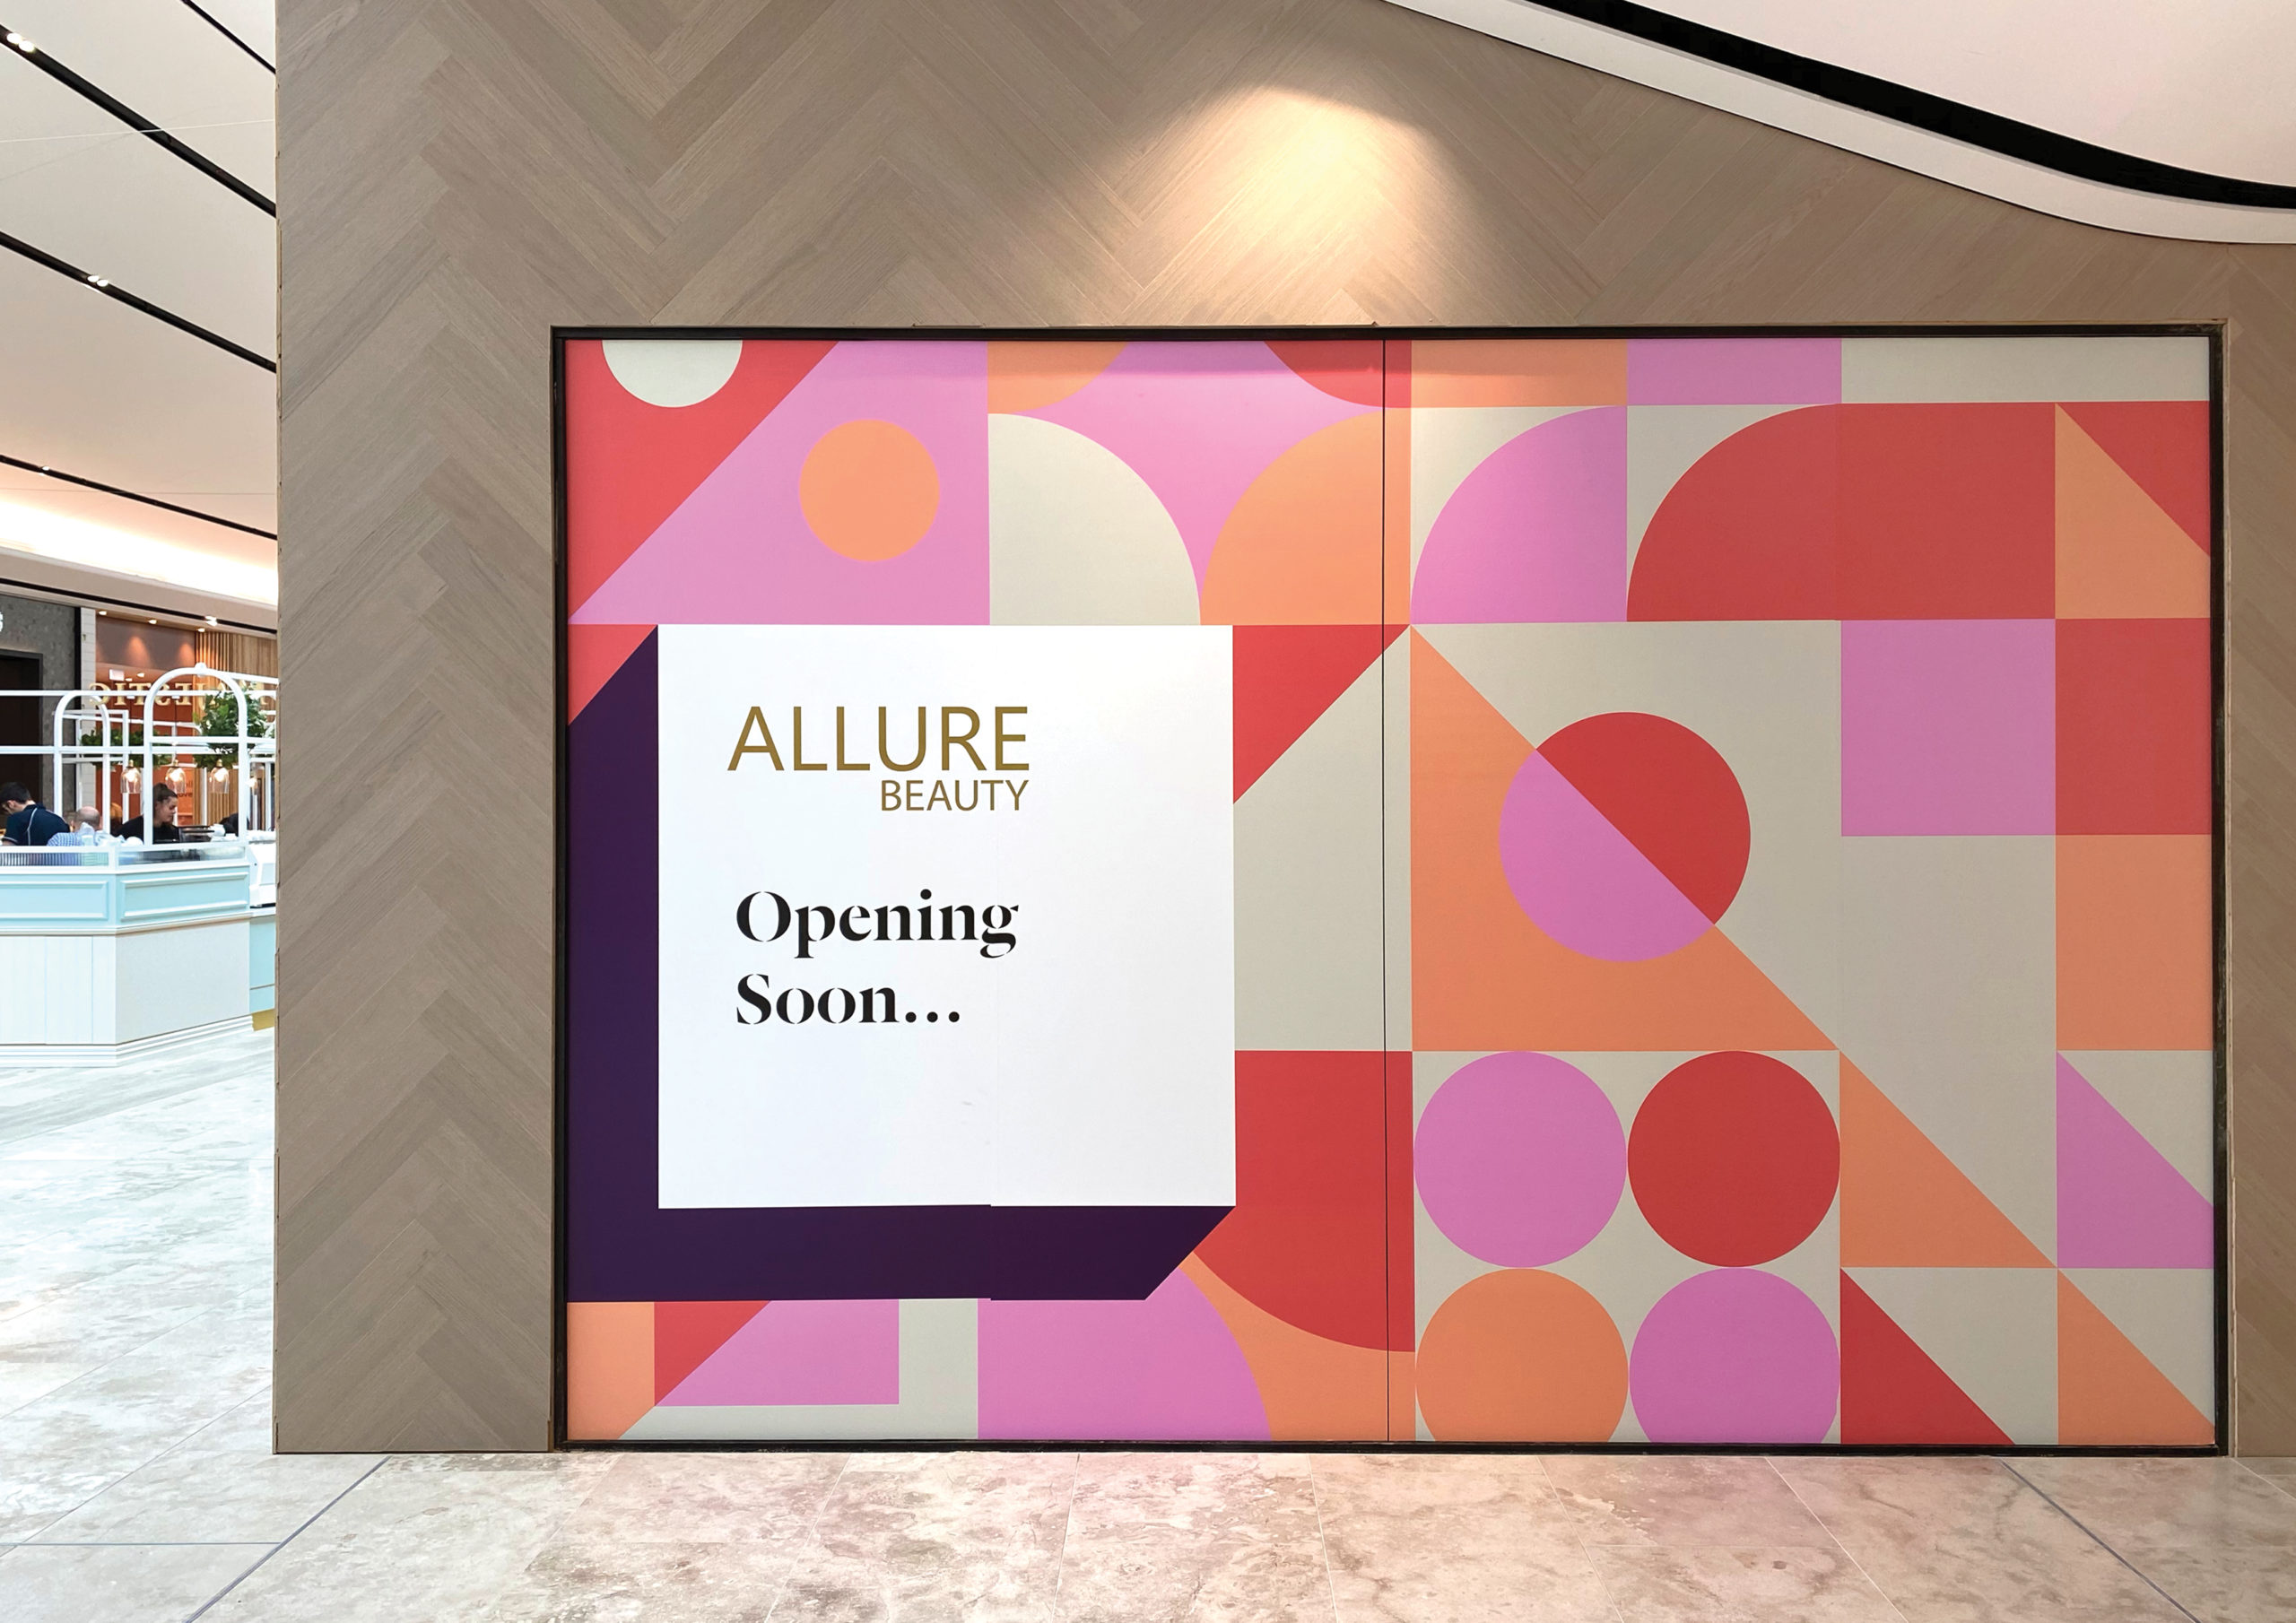 Large scale retail graphics at Sylvia Park Level 1 Launch featuring an eye-catching pink and peach geometric pattern